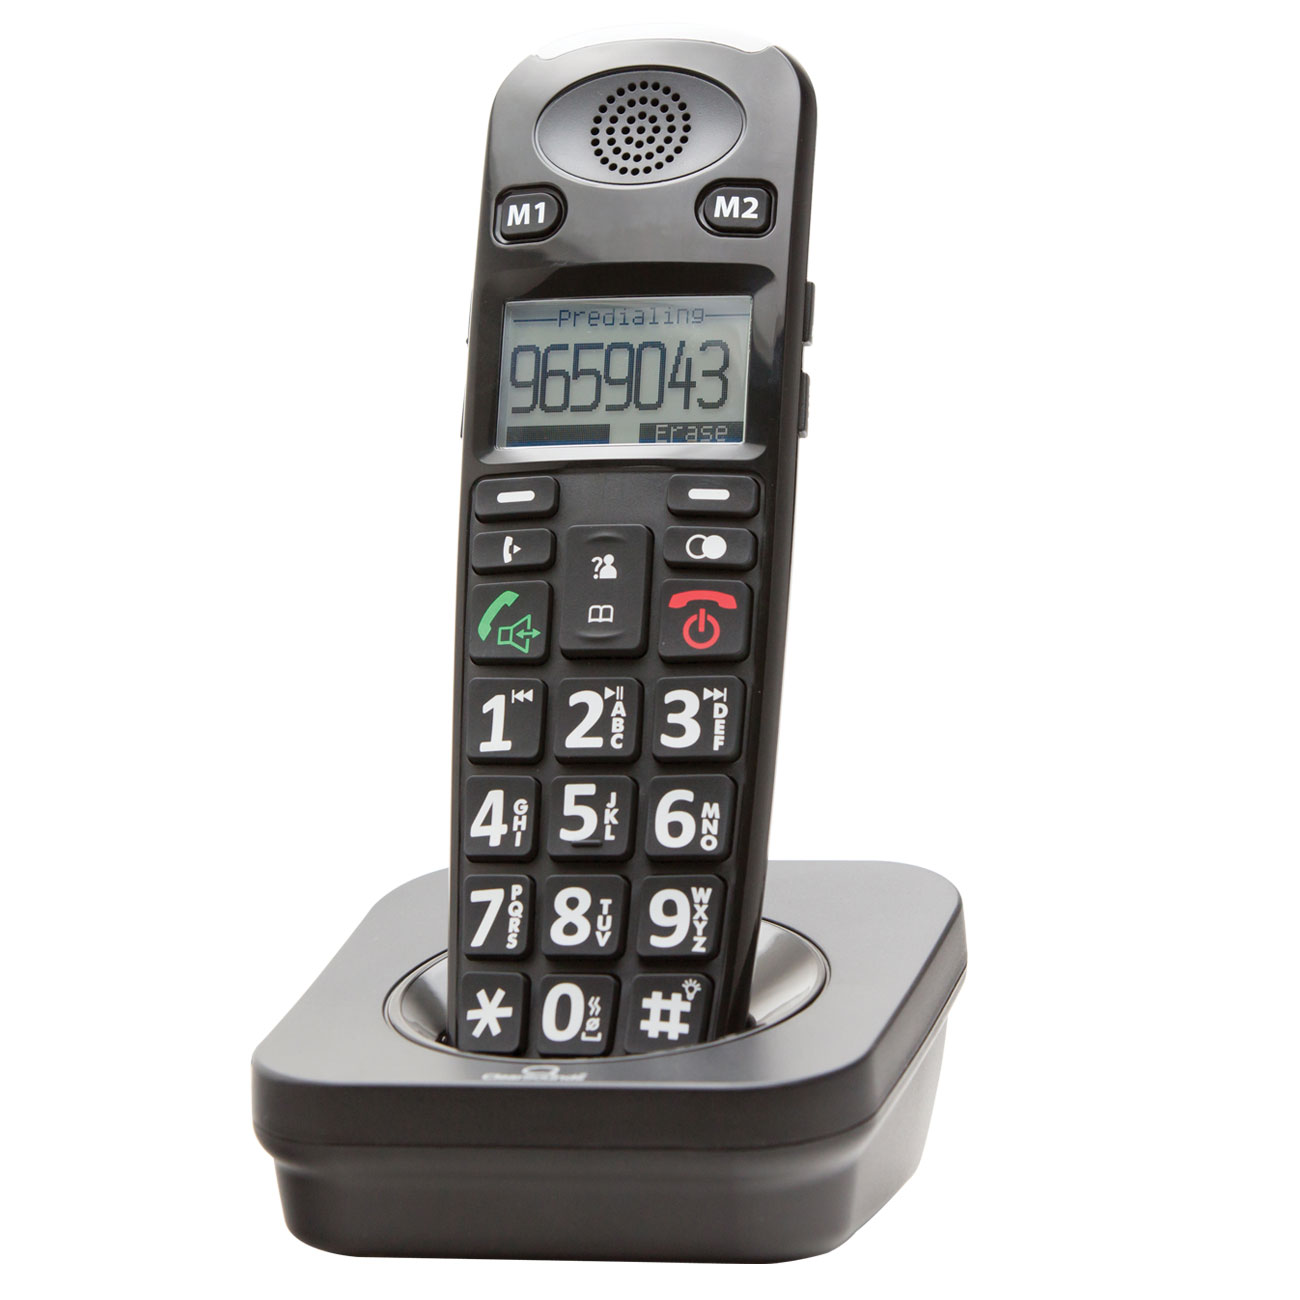 ClearSounds A700E Expansion Handset for A700 DECT 6.0 Cordless Phone